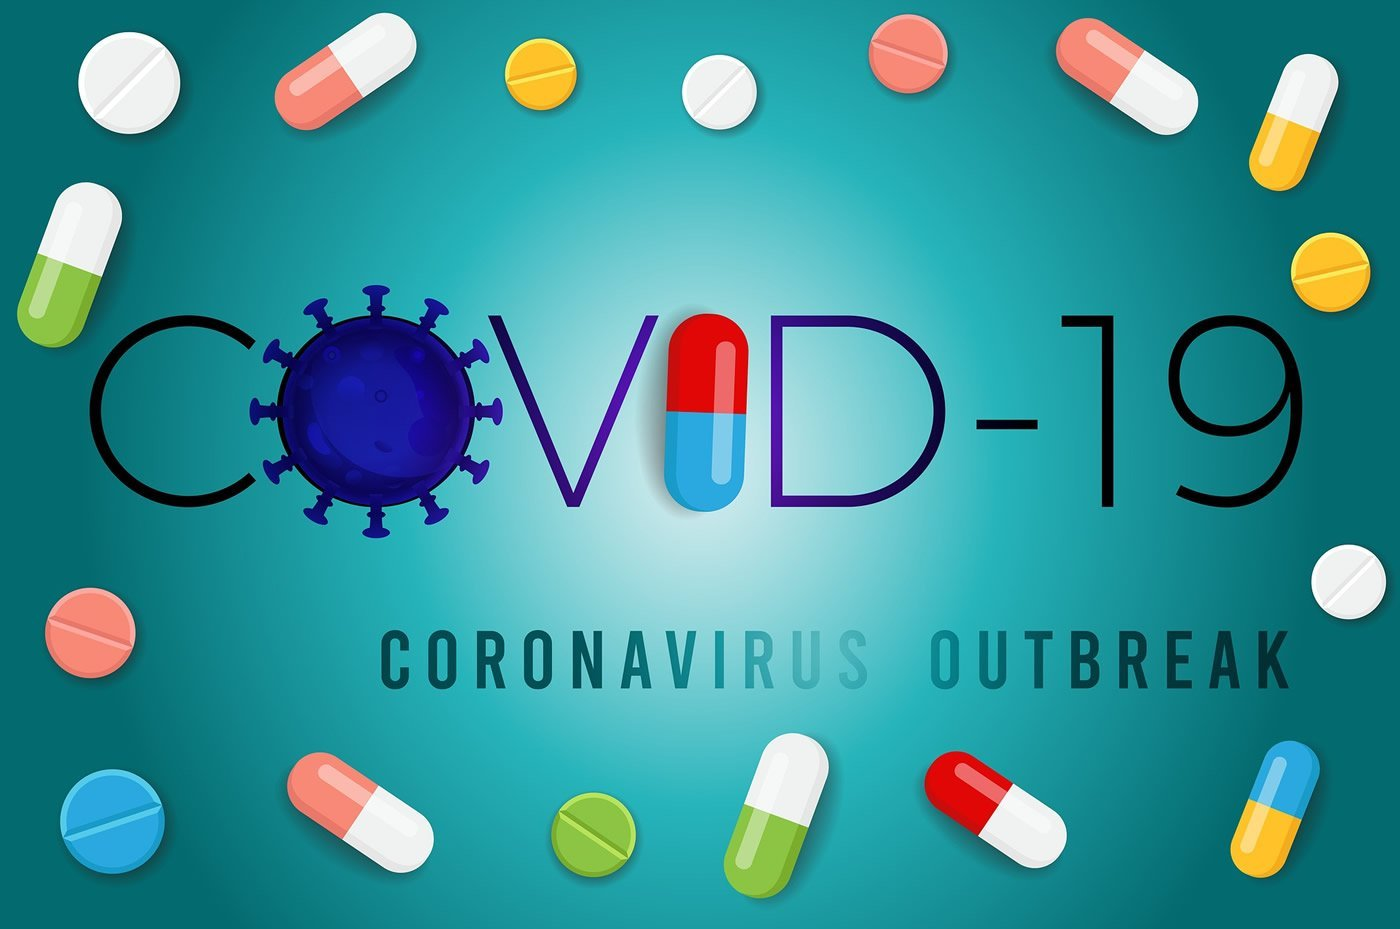 This says covid 19